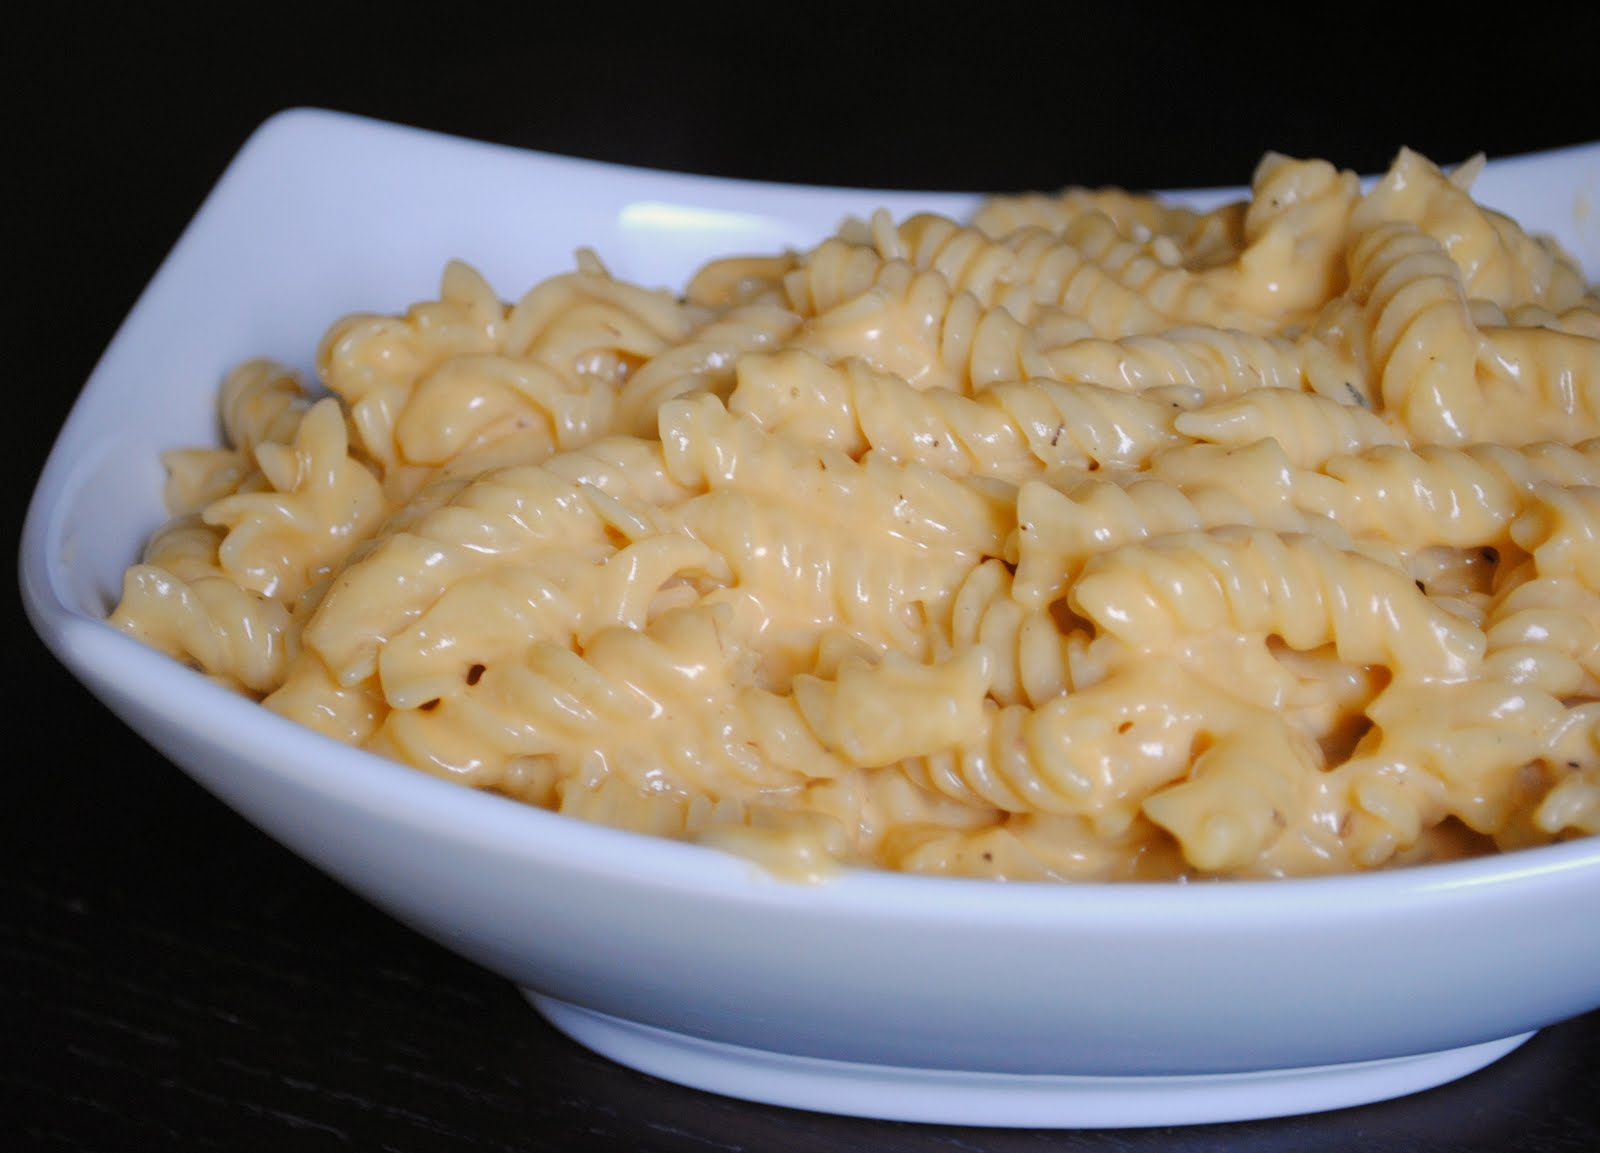 Homemade By Holman: Stove-Top Mac and Cheese